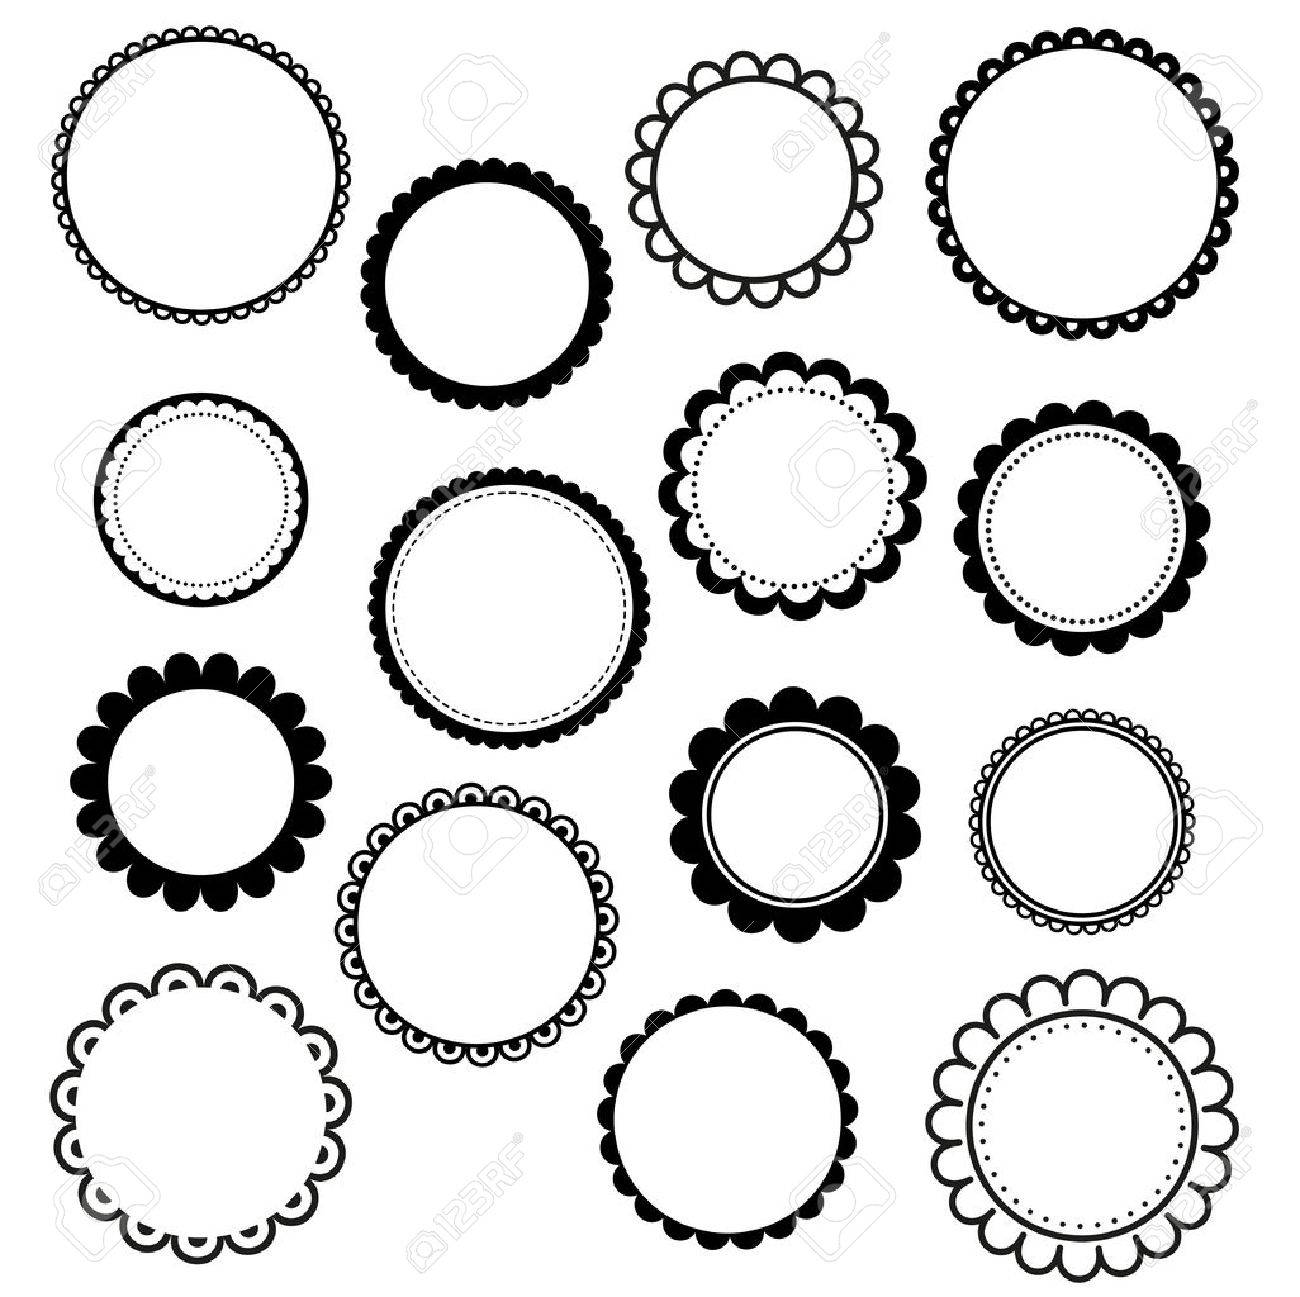 Set Of Round Scalloped Frames Royalty Free Cliparts, Vectors, And ...